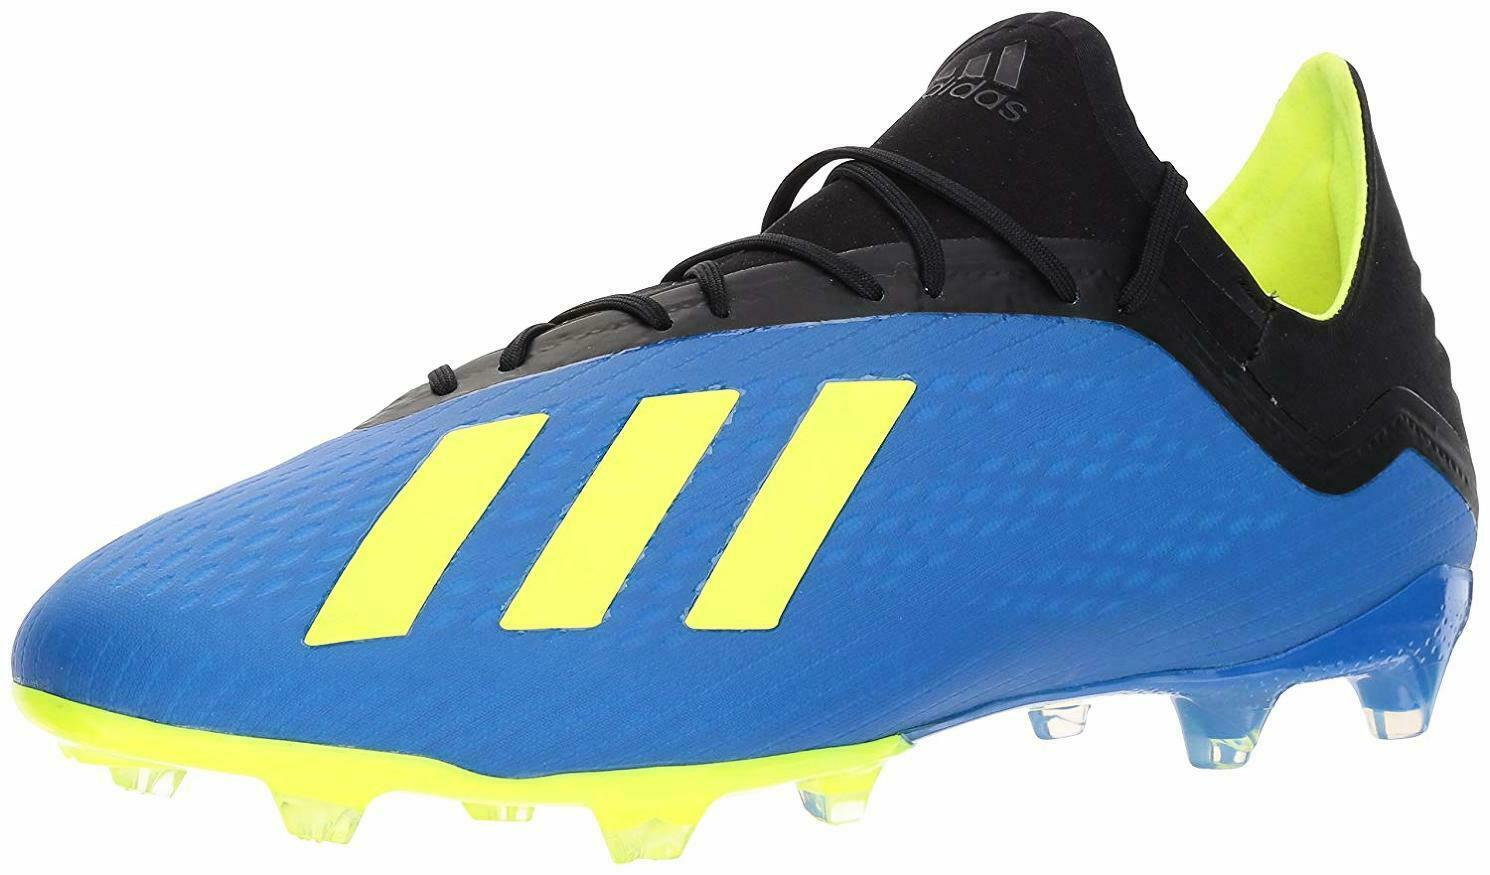 new product a7235 8ab11 Adidas Men s X 18.2 Firm Ground Soccer shoes - Choose SZ color